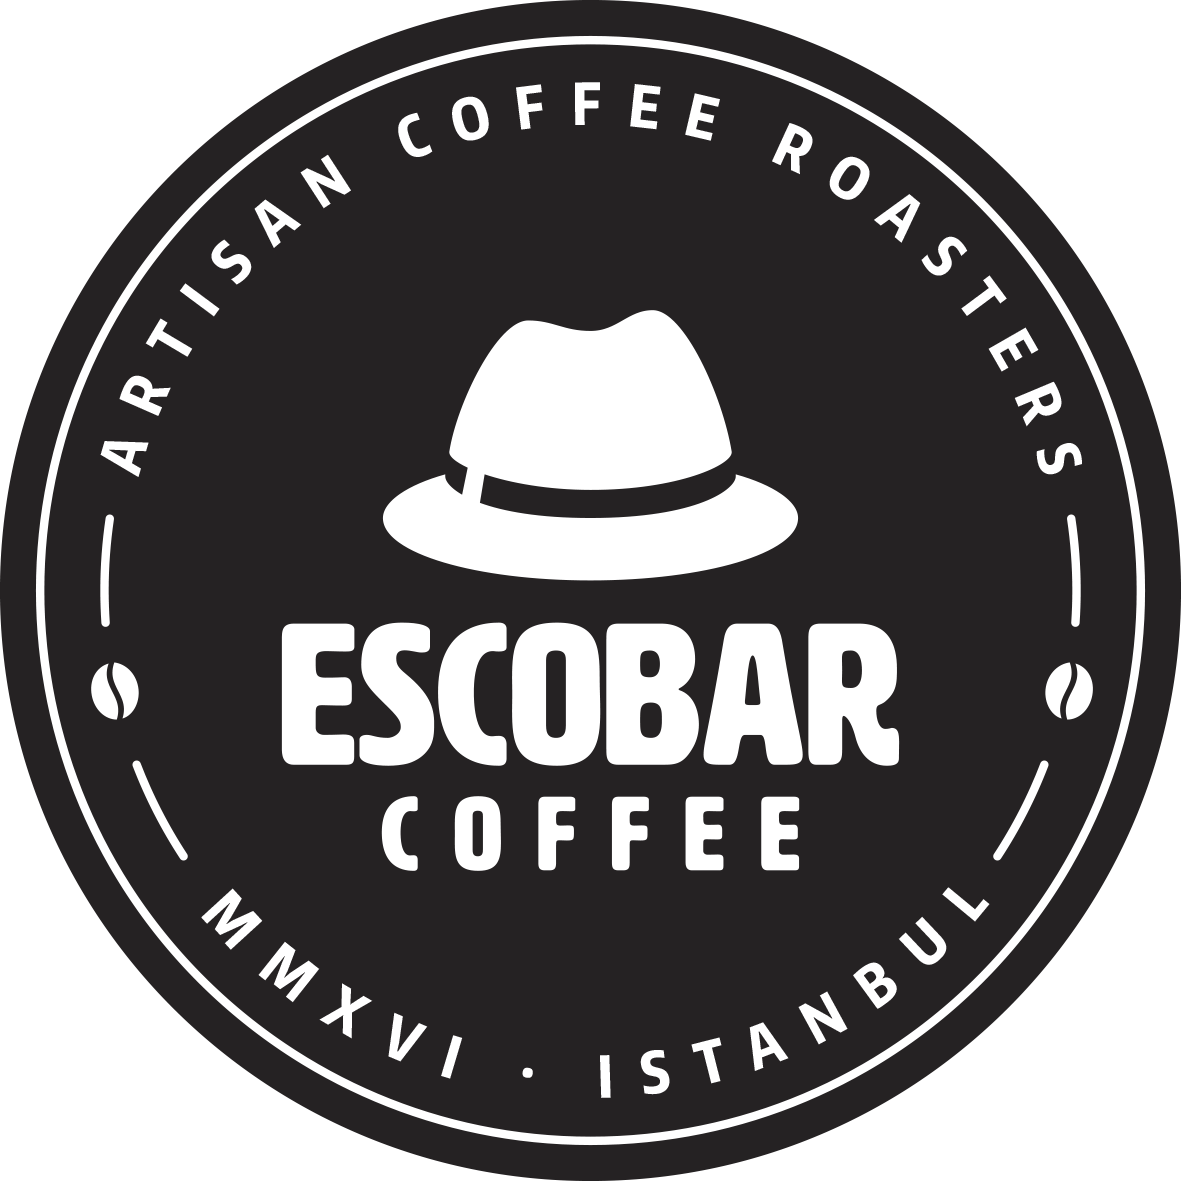 Escobar Coffee Roasters logo